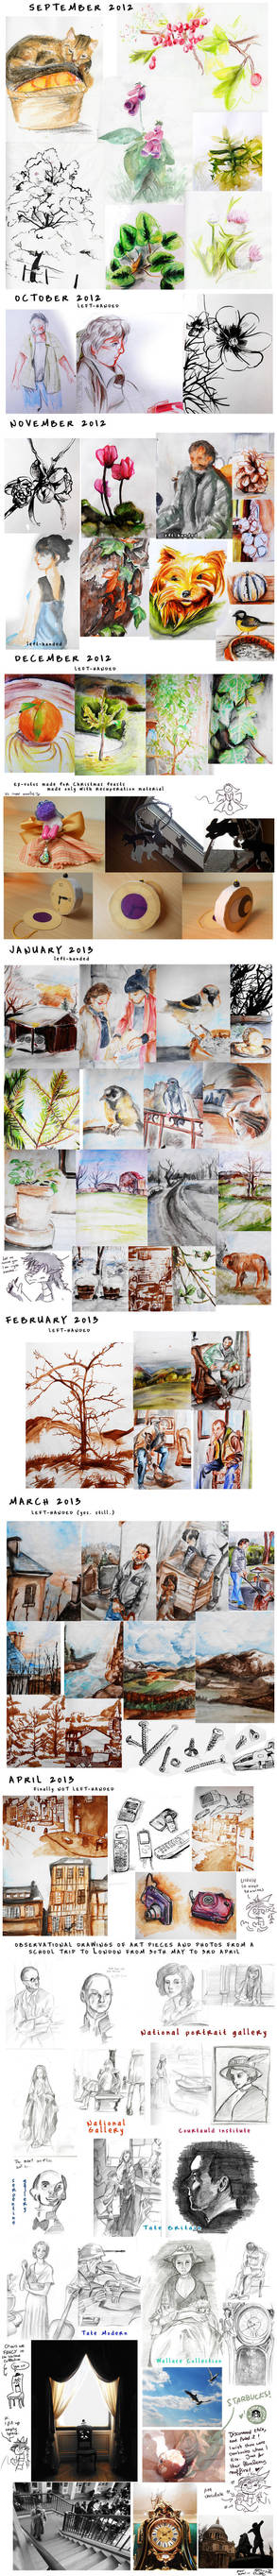 One year of observational drawings by LohiAxel